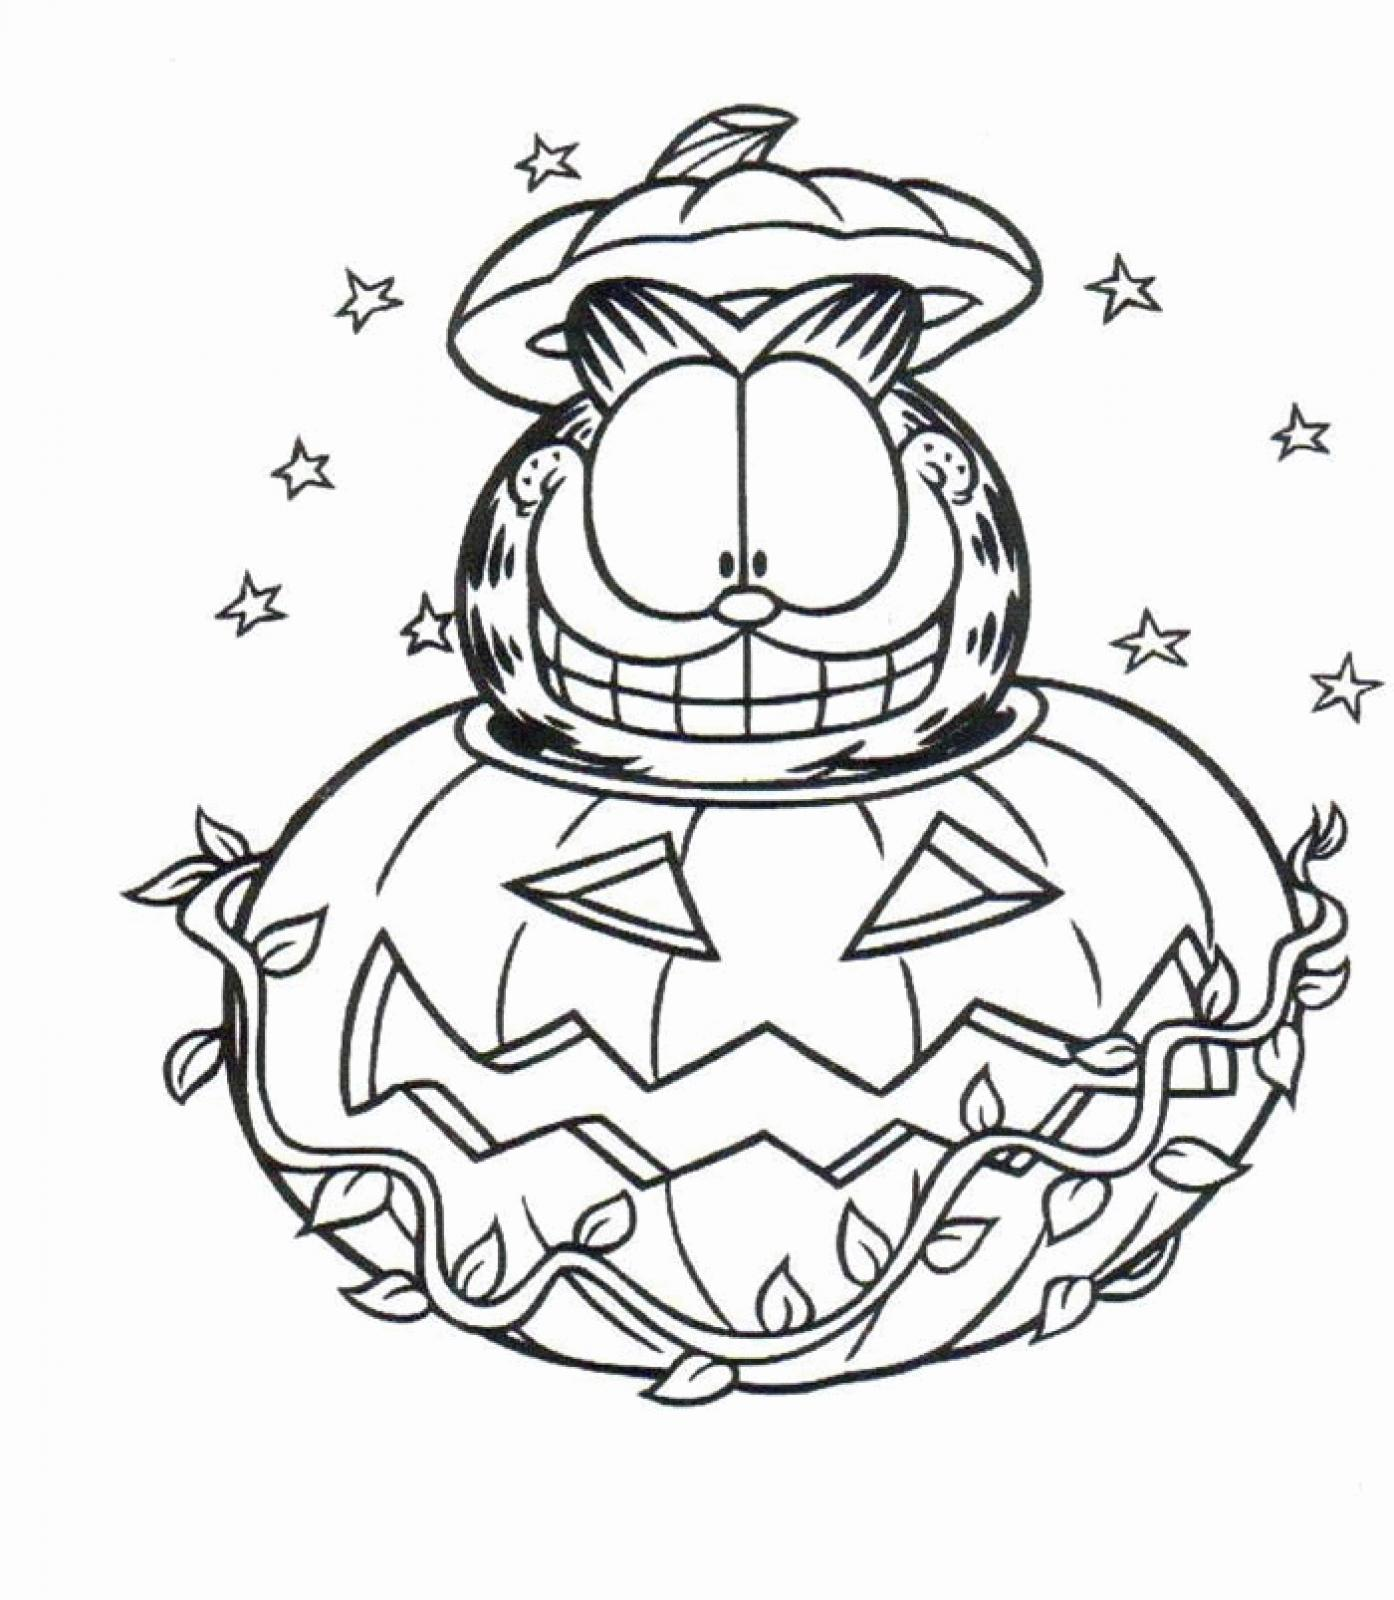 Garfield Halloween Coloring Pages  simonschoolblogcom